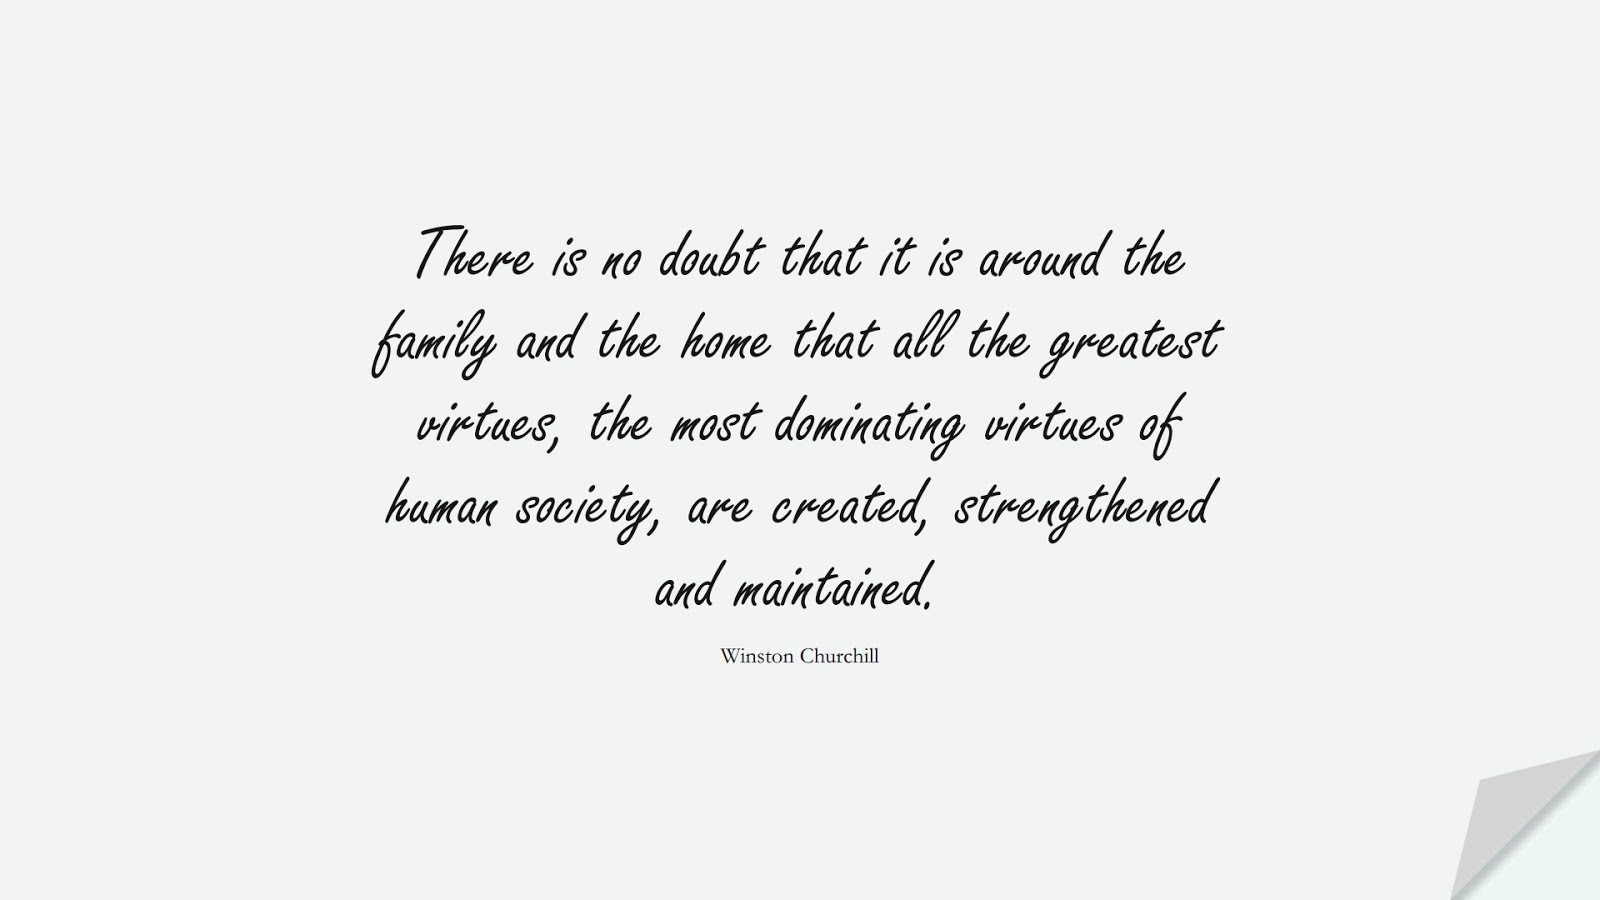 There is no doubt that it is around the family and the home that all the greatest virtues, the most dominating virtues of human society, are created, strengthened and maintained. (Winston Churchill);  #RelationshipQuotes